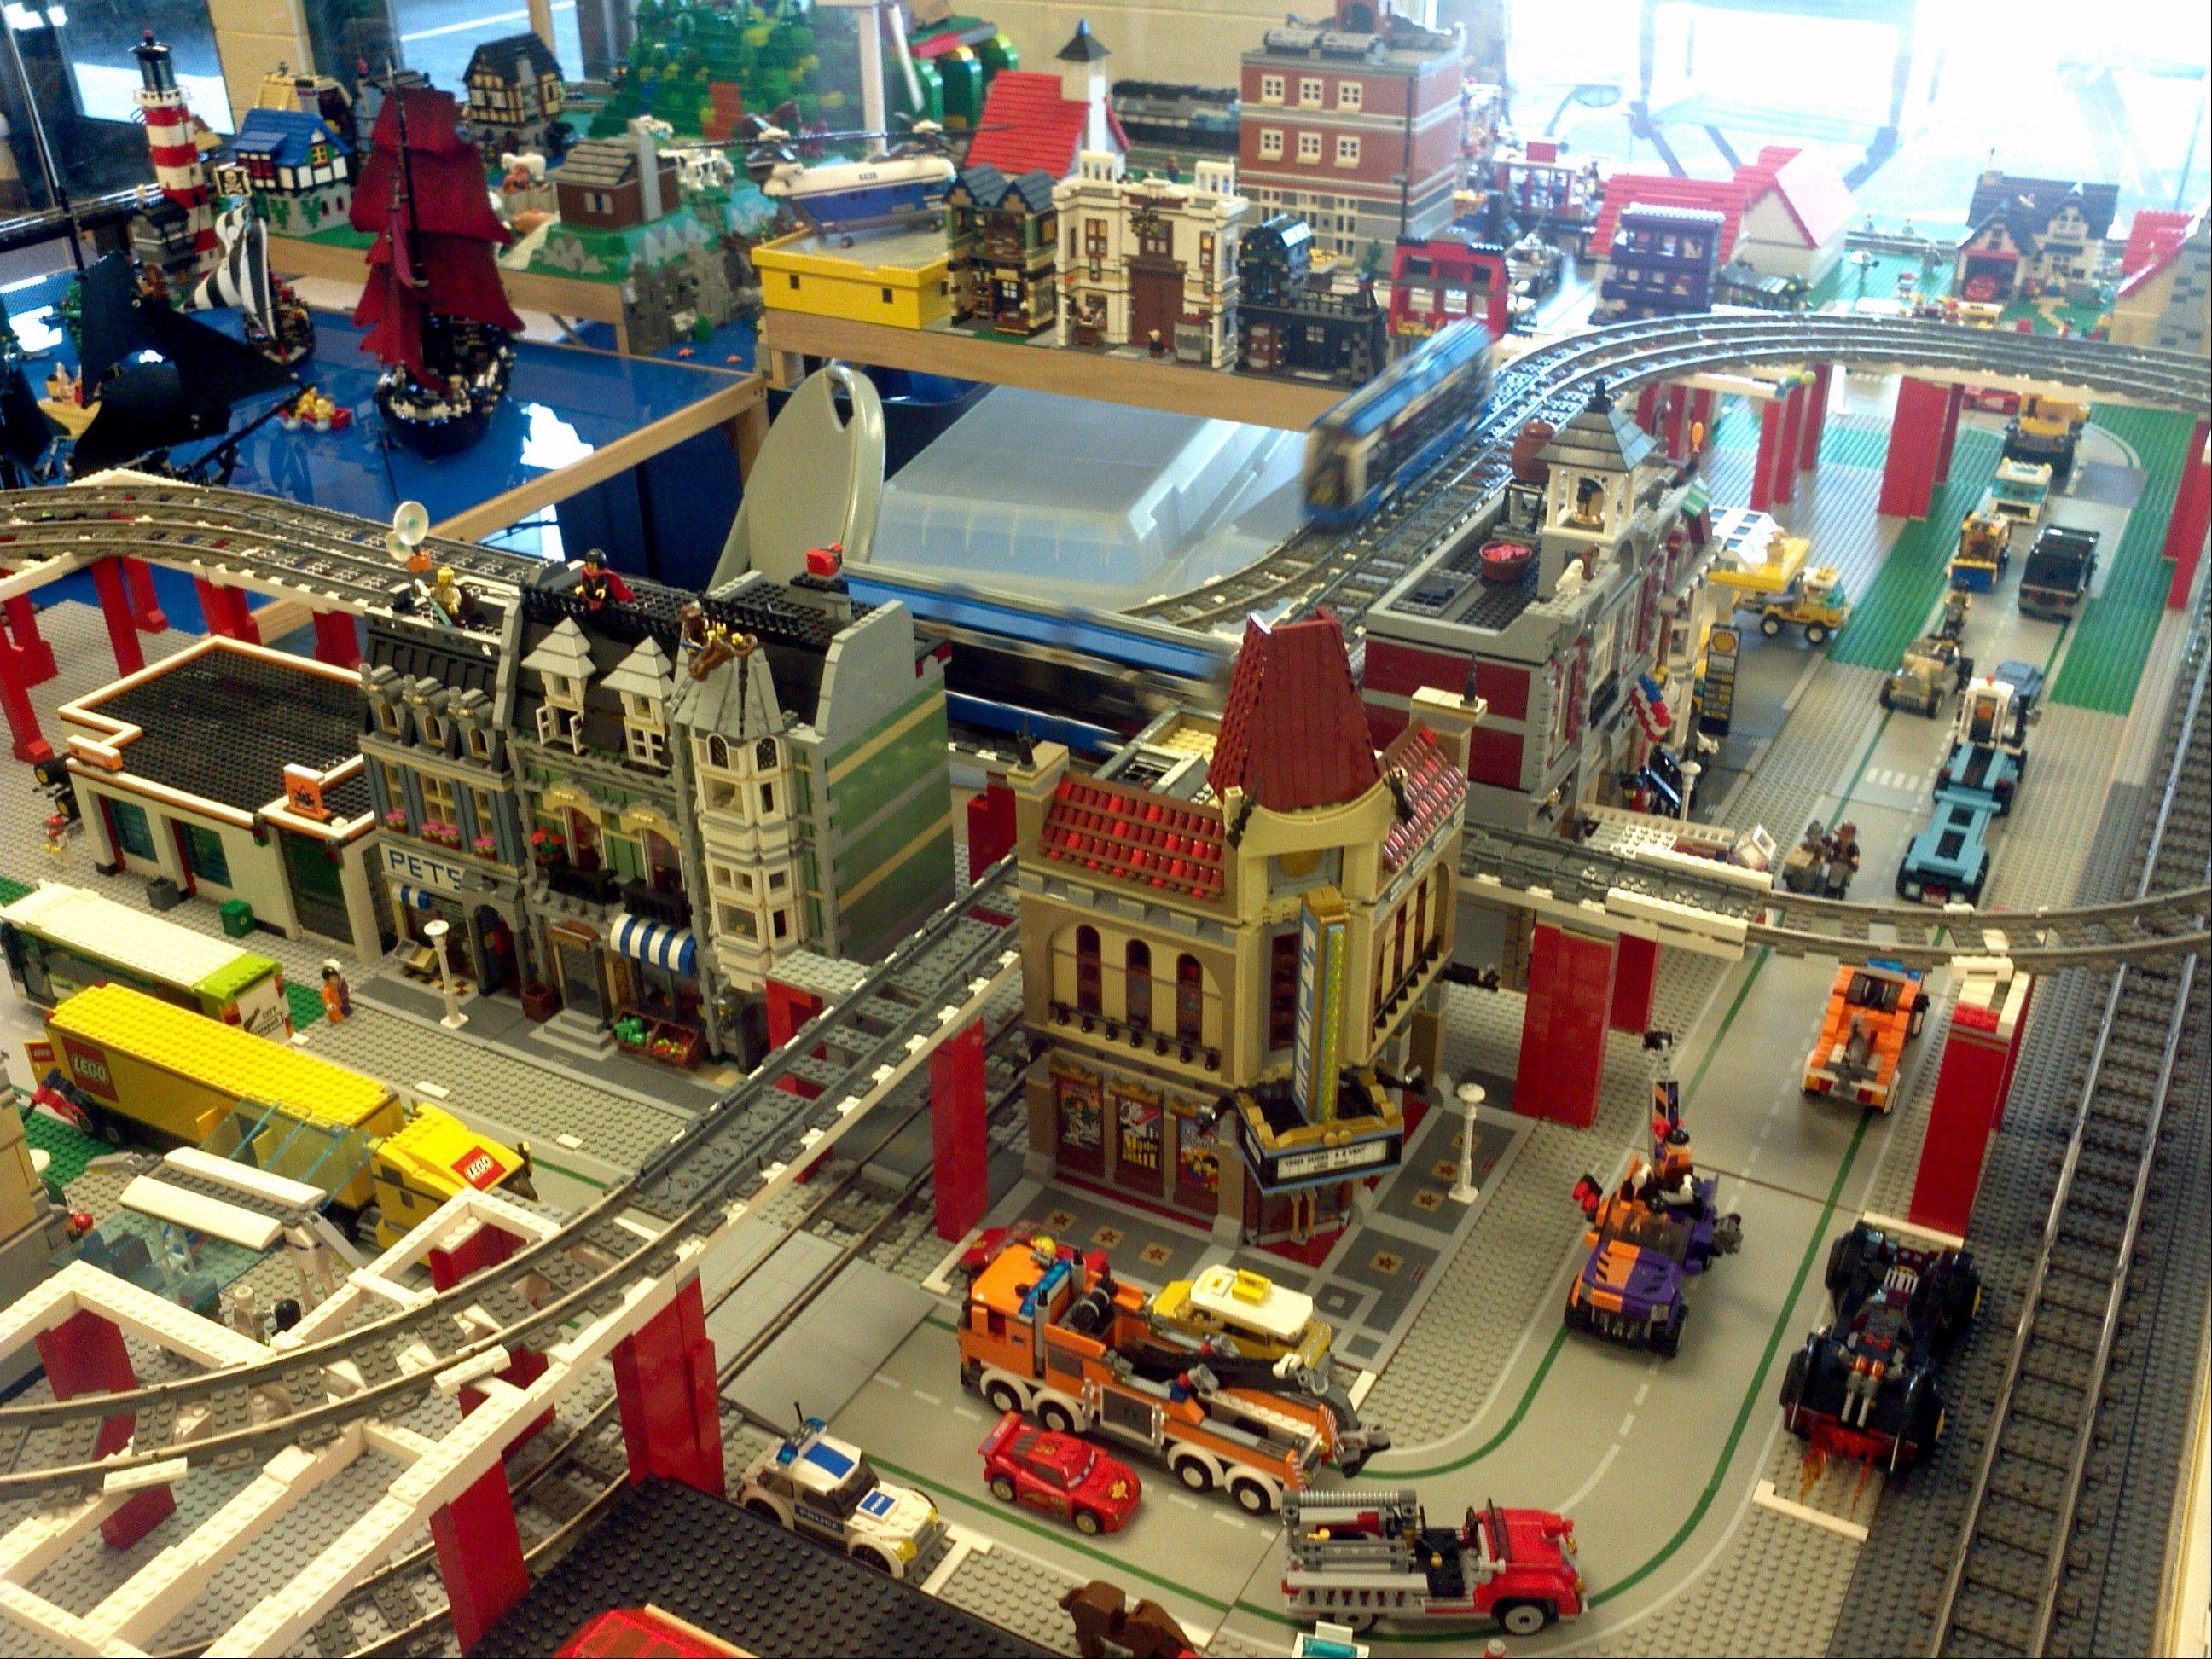 The Lego Village created by Randy Flones of South Elgin is part of the holiday show up Nov. 29 to Dec. 30 at the Bloomingdale Park District Museum.